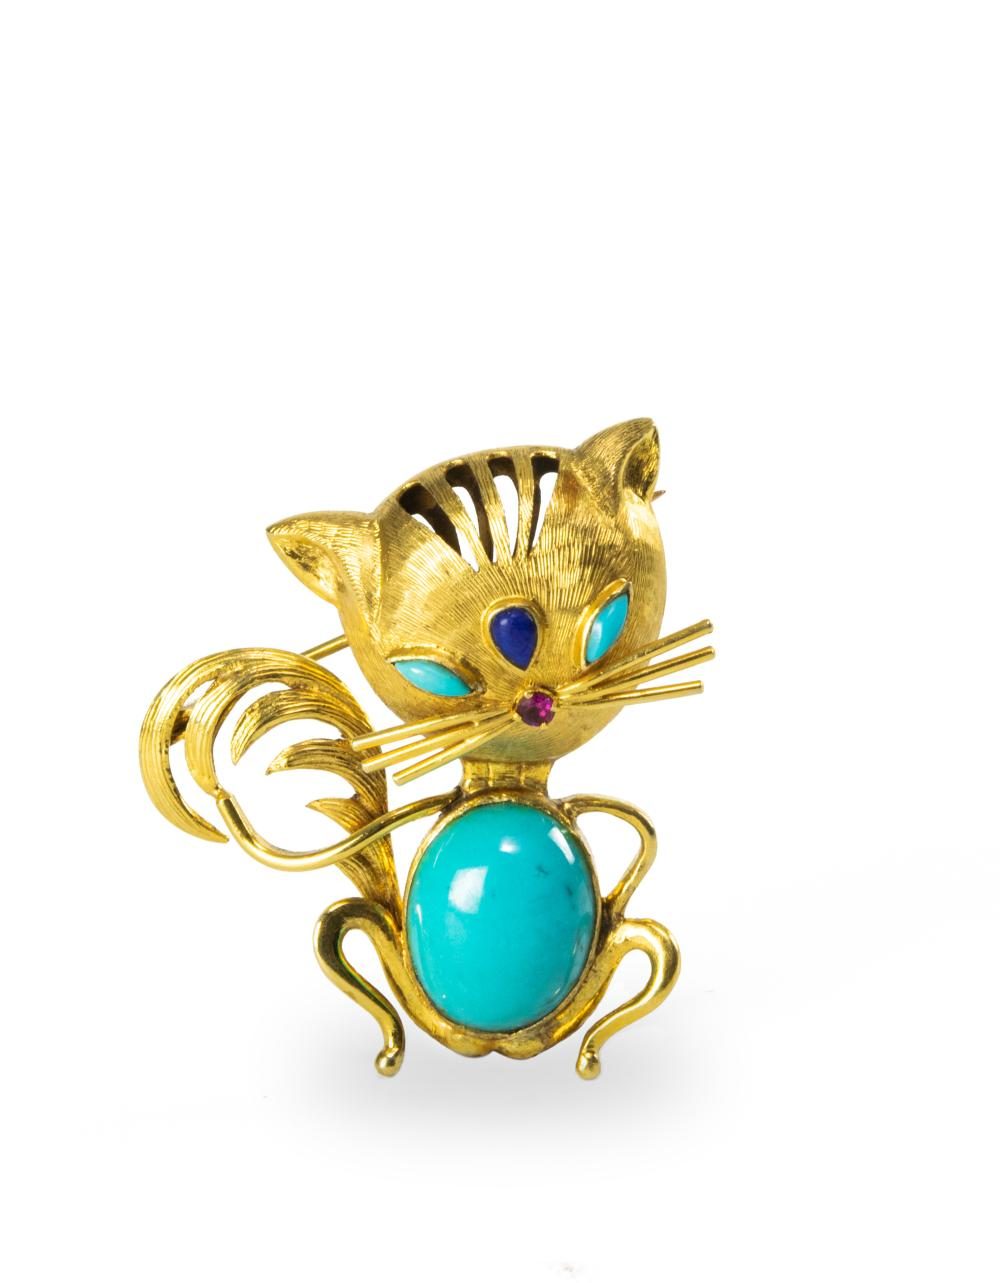 CHINESE CAT 14K BROOCH WITH TURQUOISE